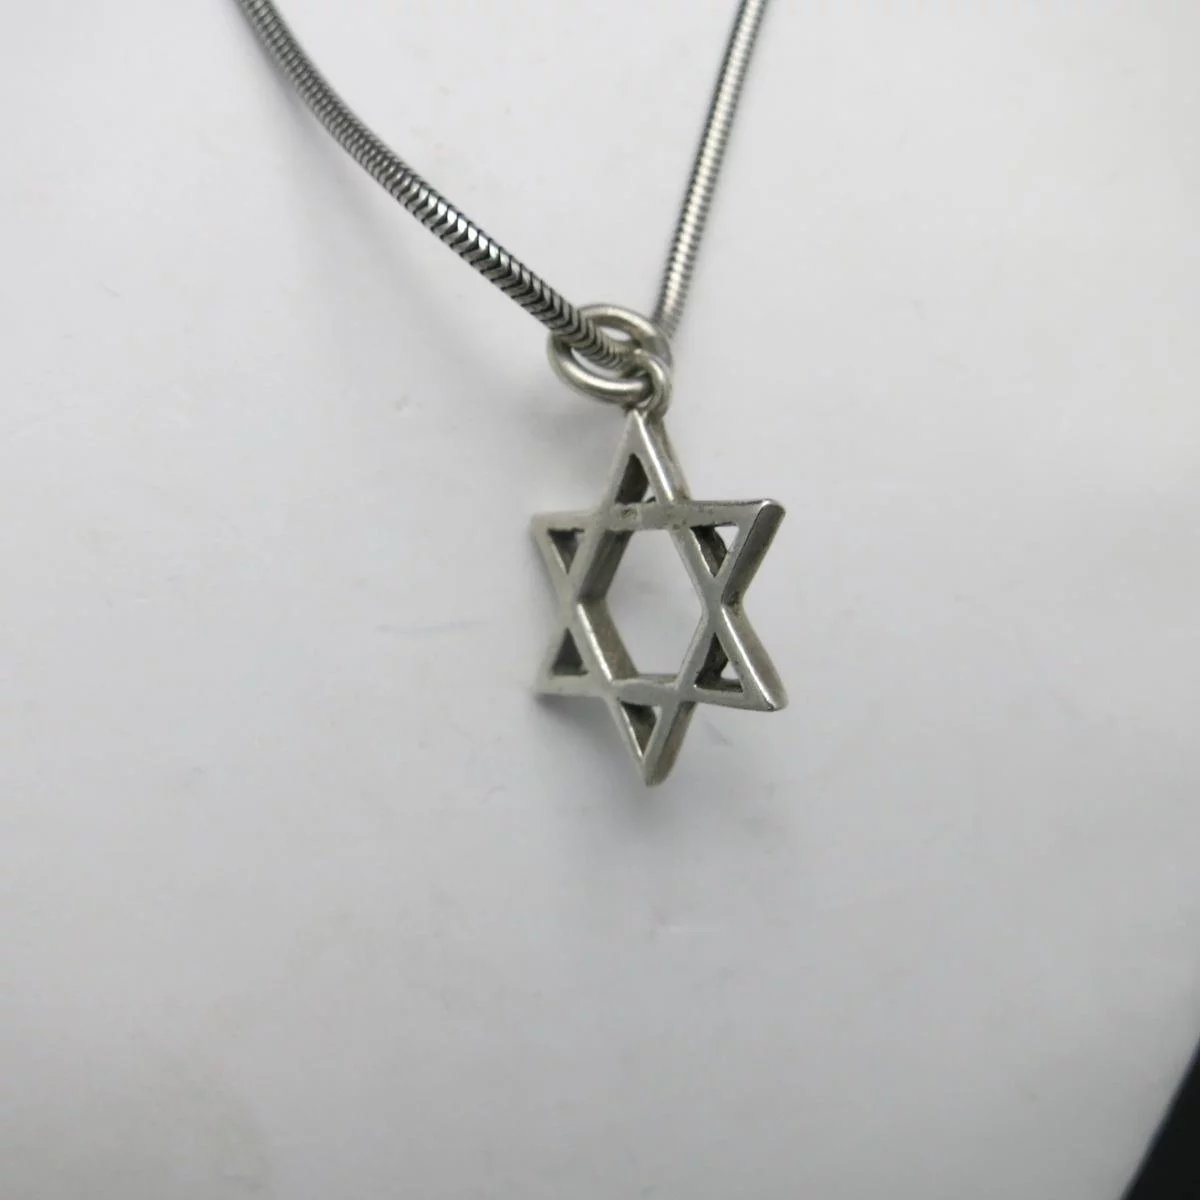 israel stainless necklace color gold hot of david plated cross star necklaces pendant chain women steel in men jewelry jewish magen from item